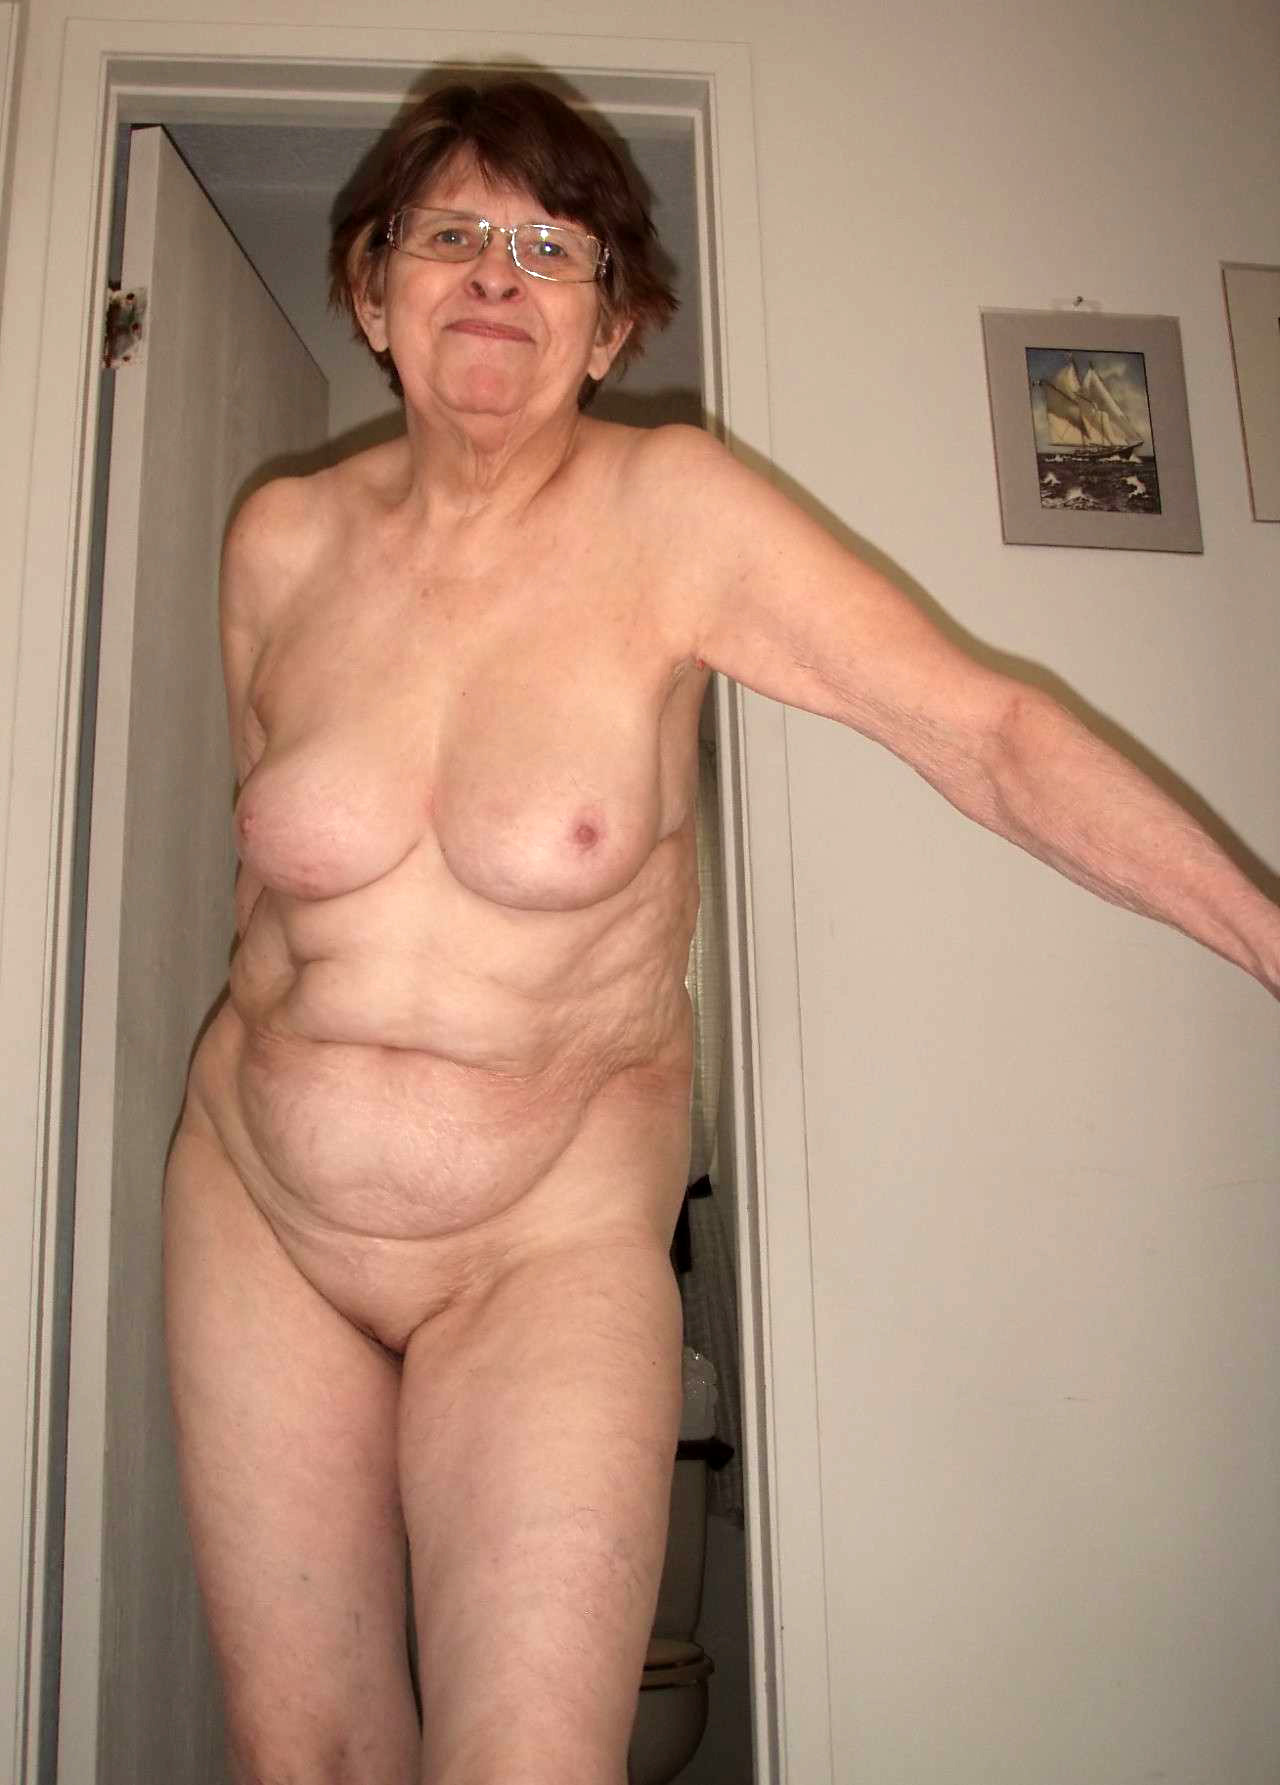 Amateur mature nude granny remarkable, very